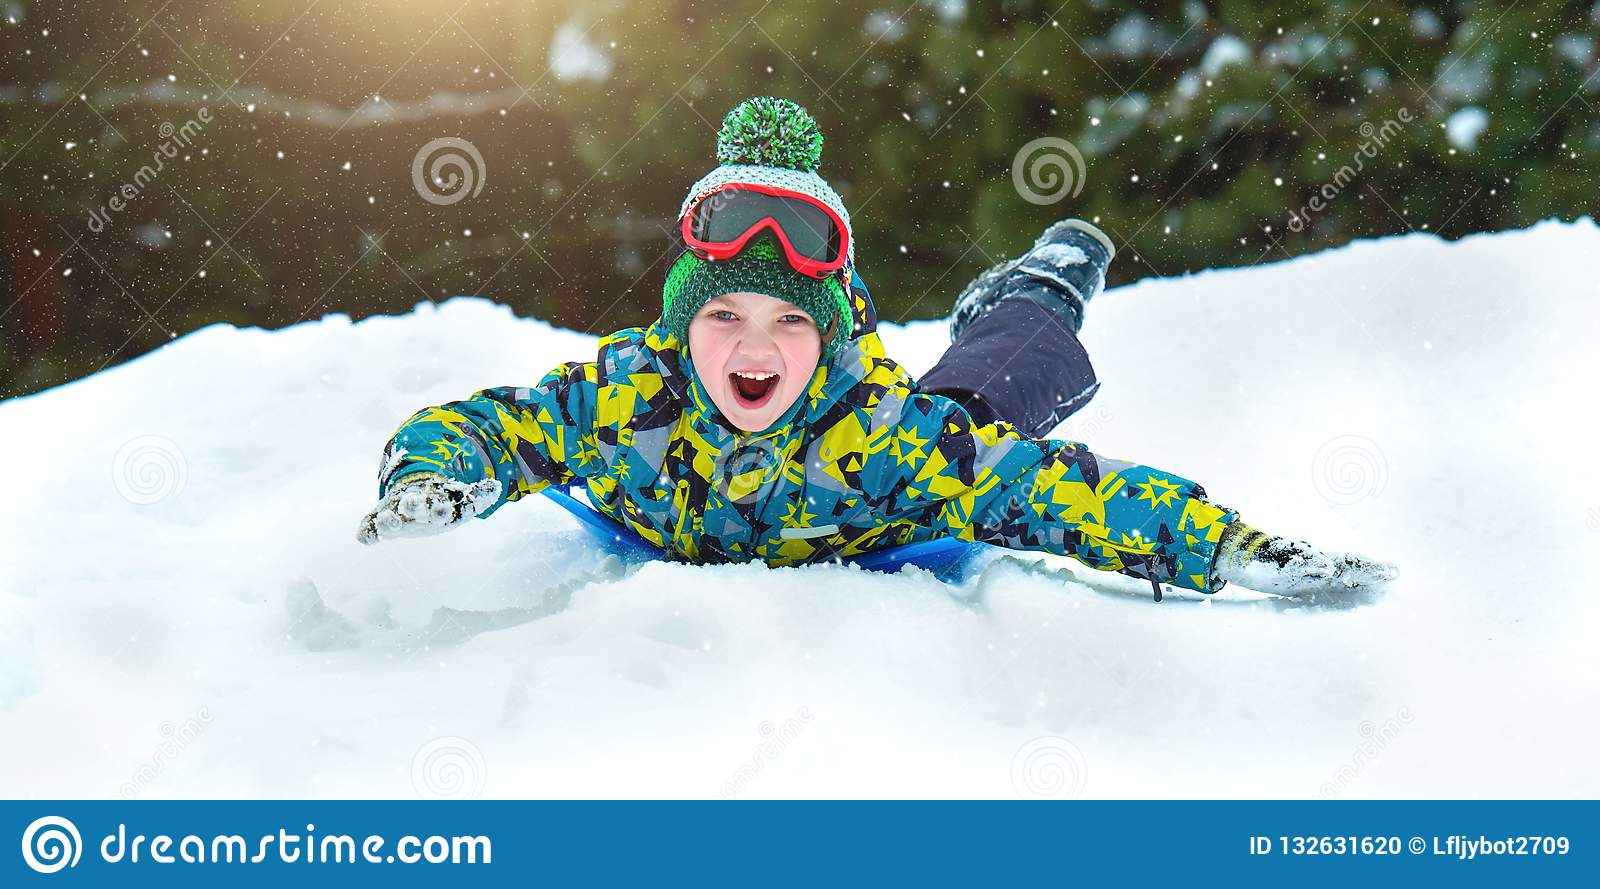 Boy sledding in a snowy forest. Outdoor winter fun for Christmas vacation.